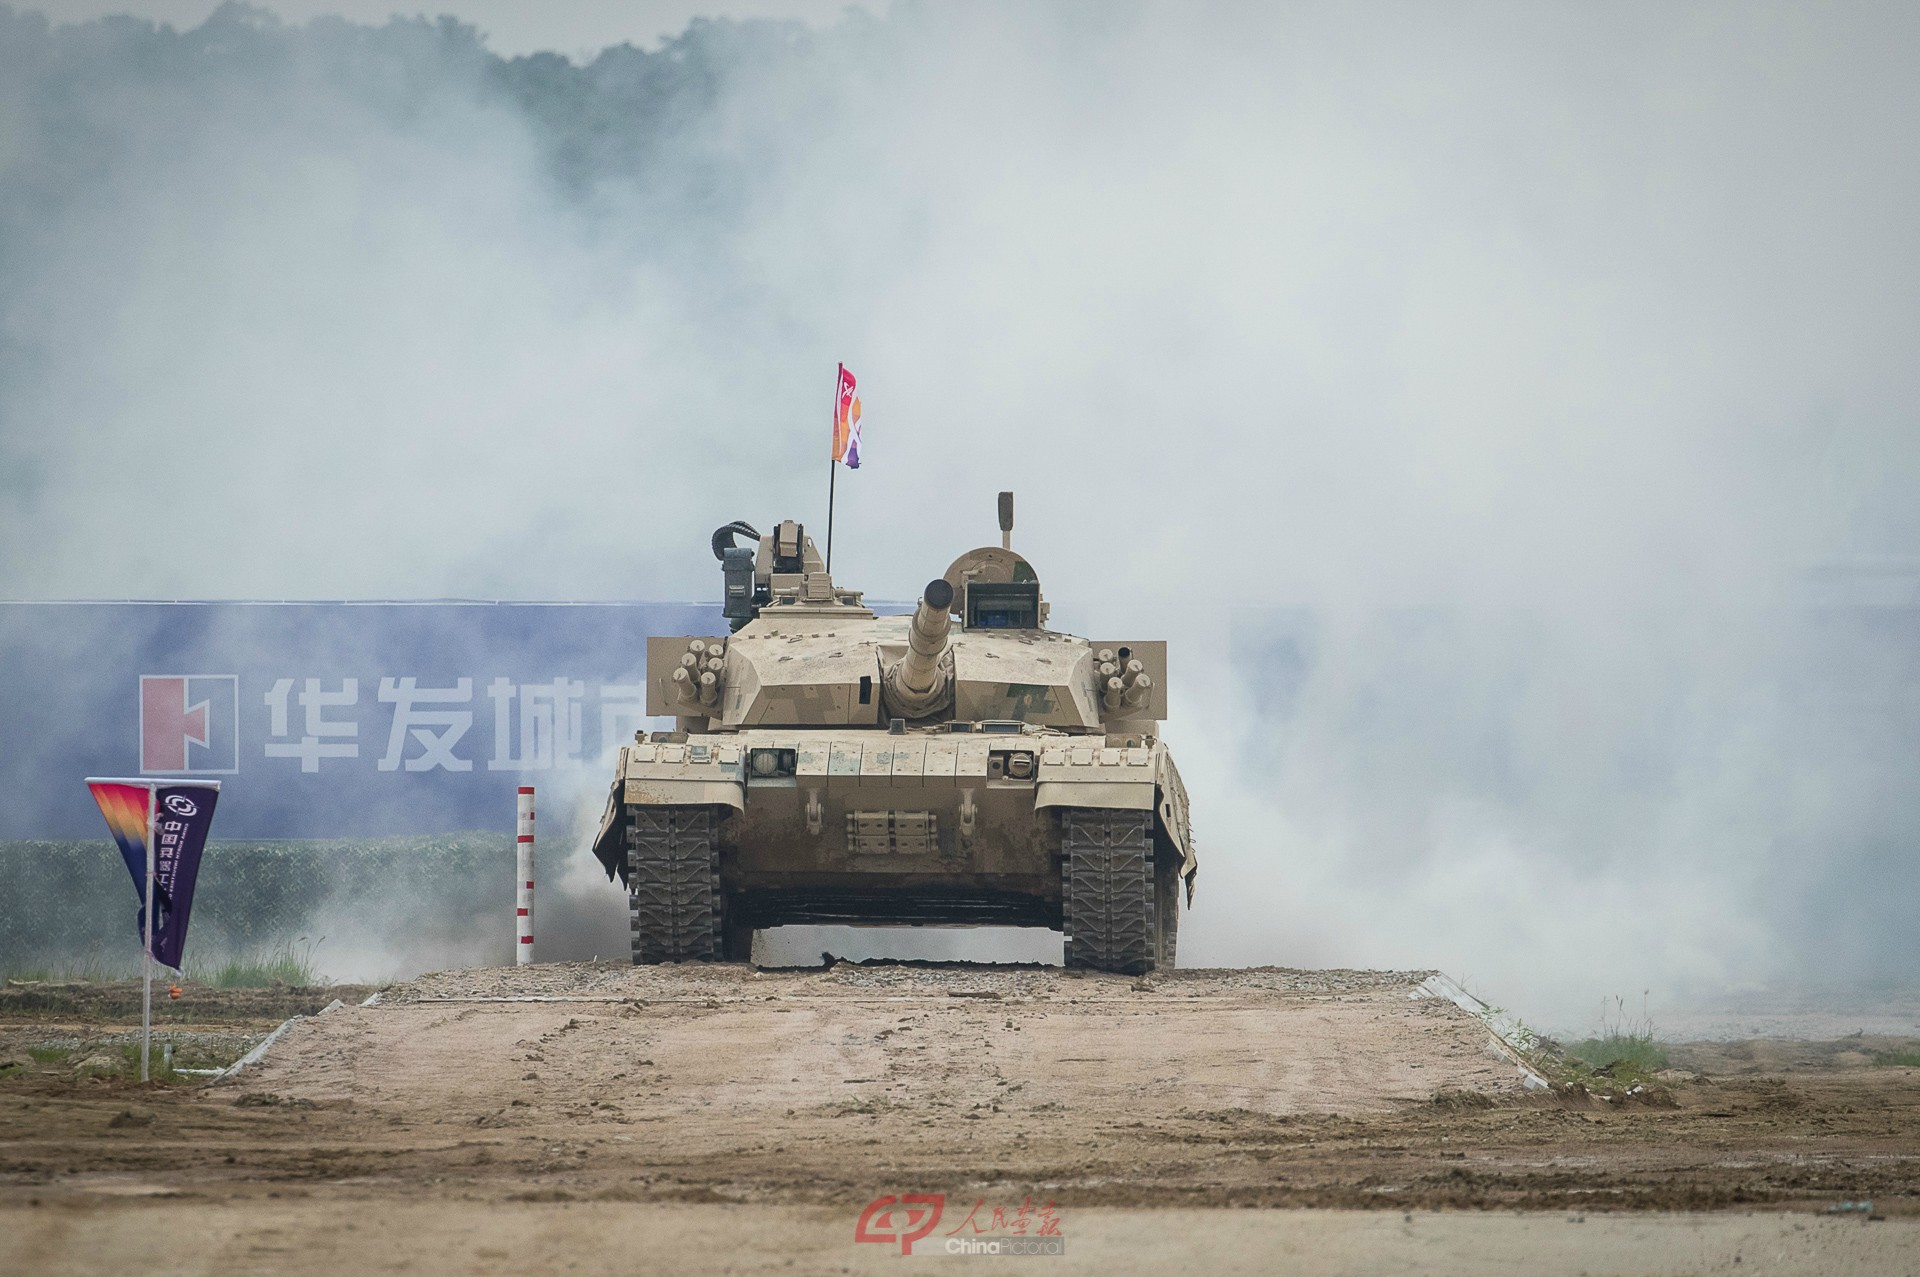 Chinese People's Liberation Army (PLA): Photos and Videos - Page 3 30676759126_20619c0207_o_d